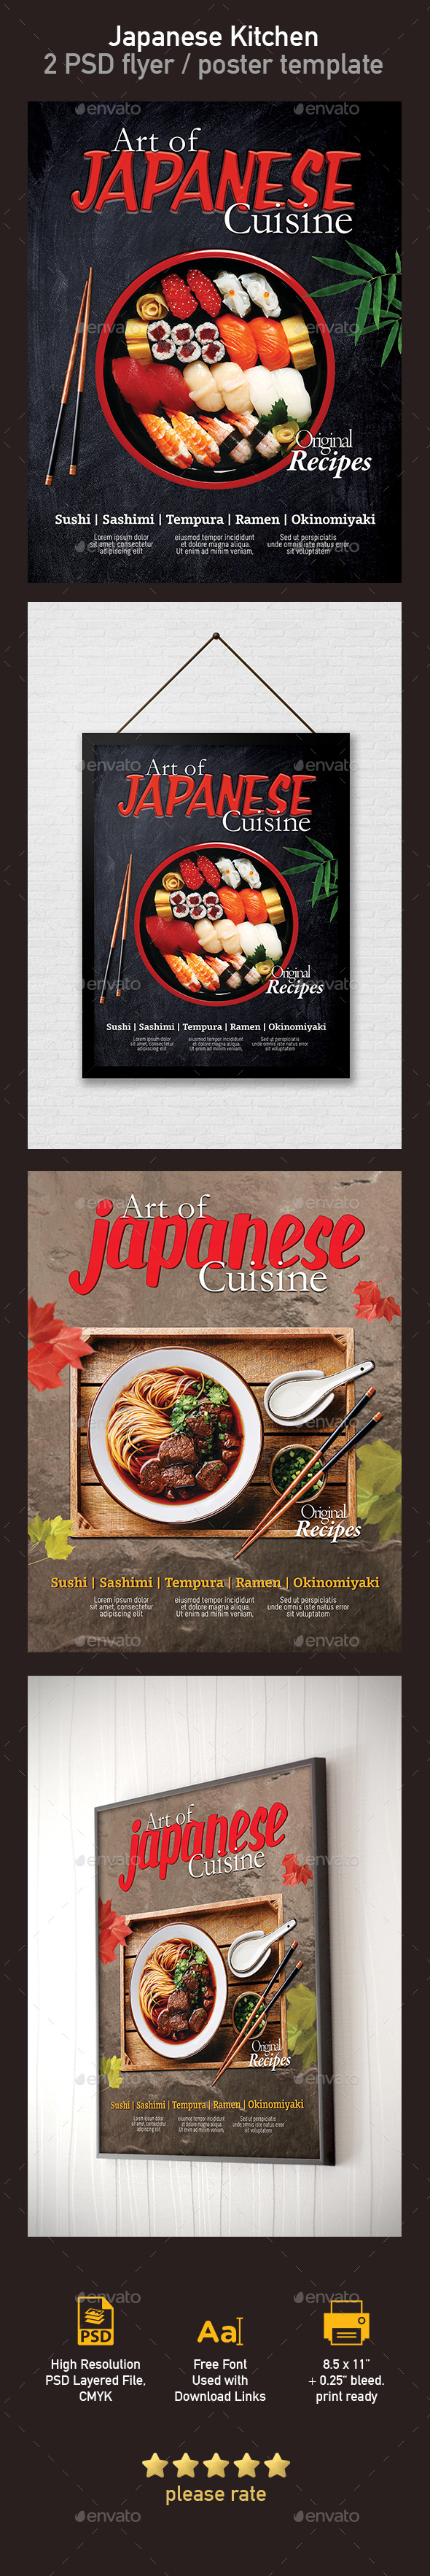 Japanese Restaurant Flyer / Poster Template - 2 PSD